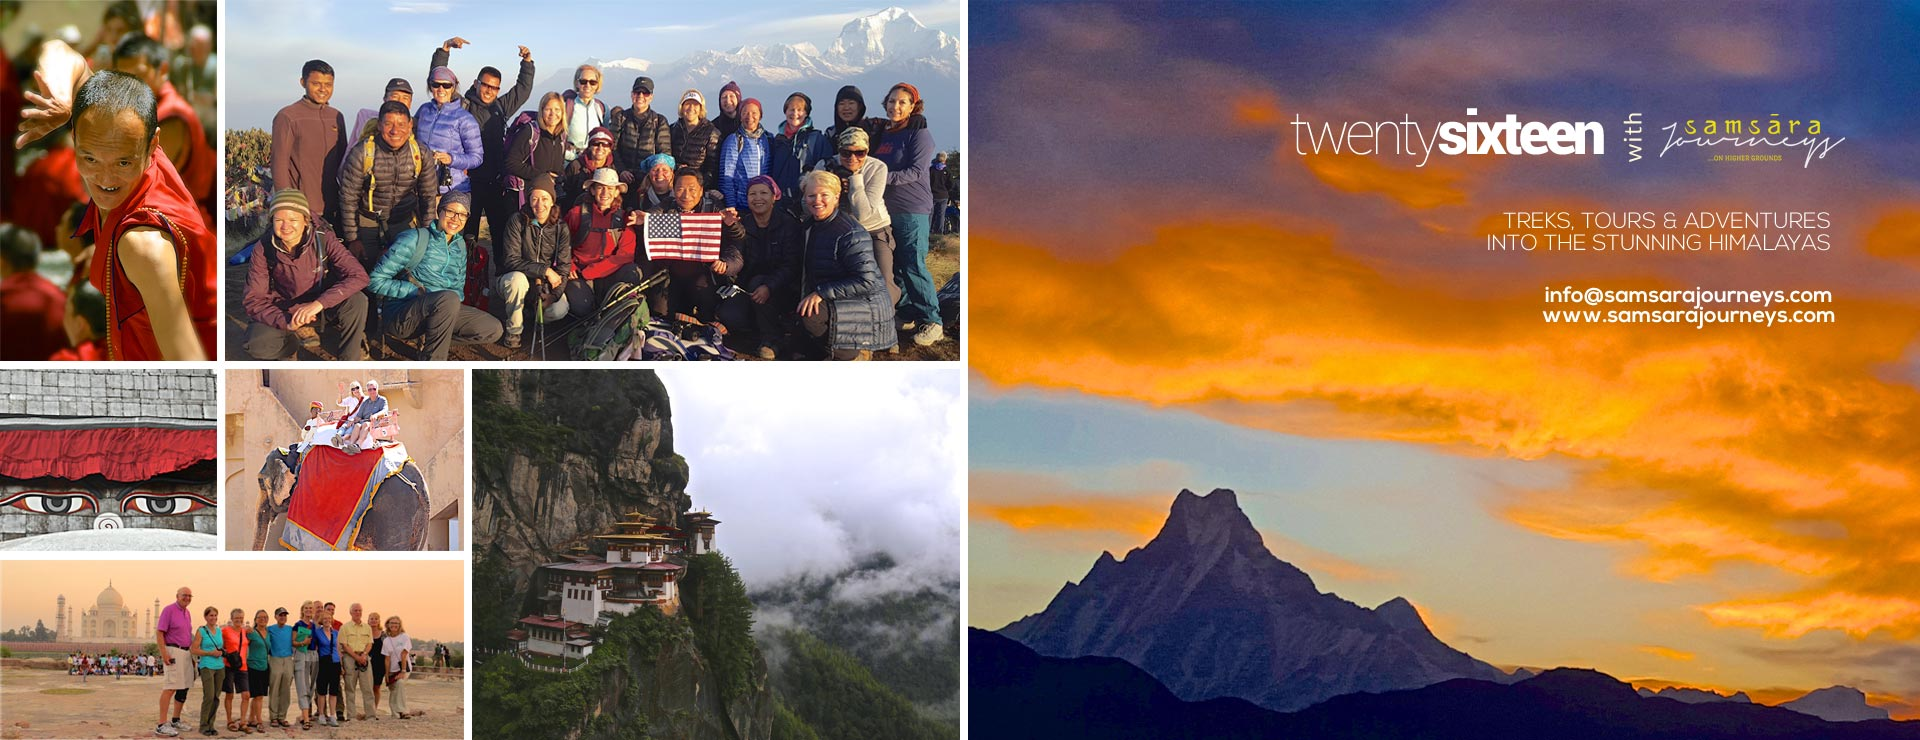 Samsara Journeys - Tours, Treks and Journeys to Nepal, Tibet, Bhutan, Sikkim and Darjeeling